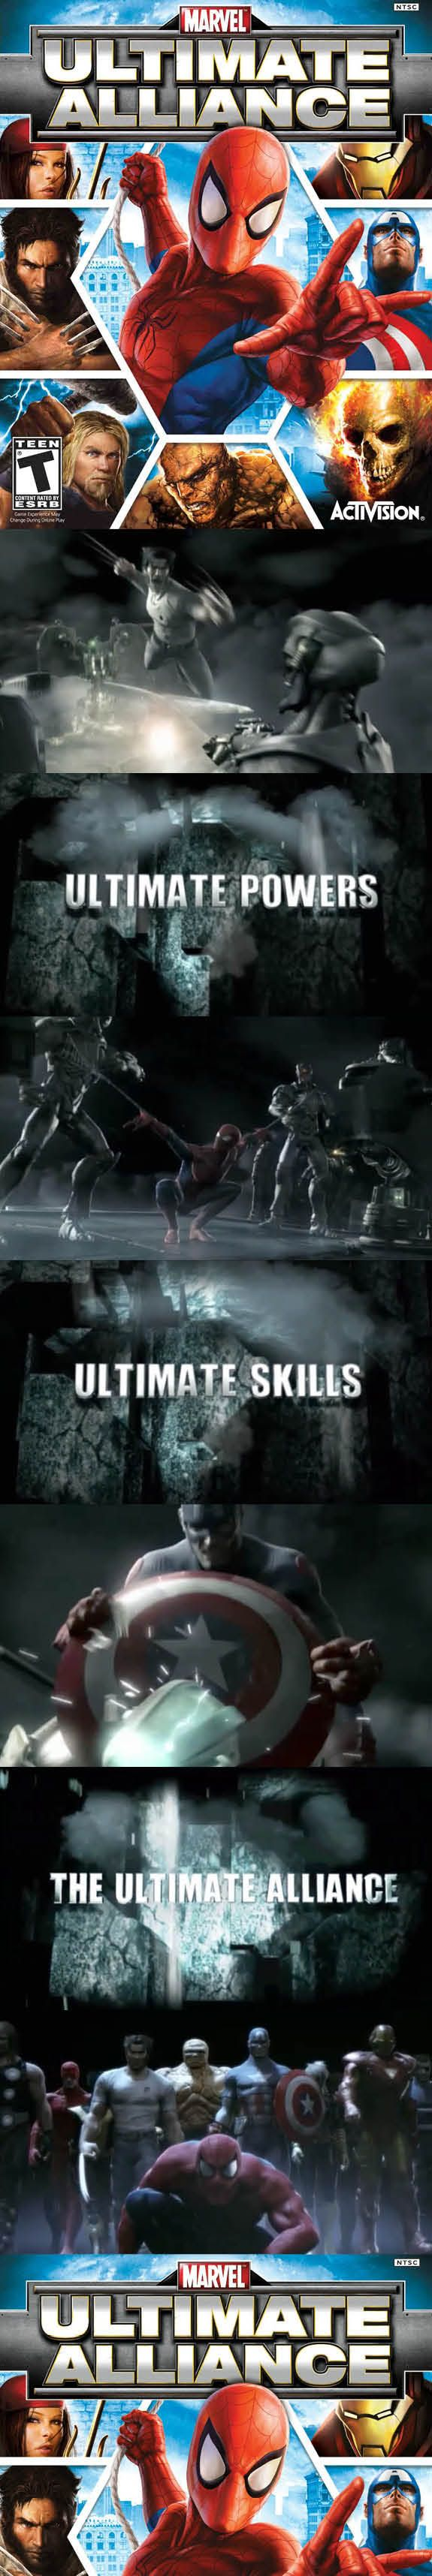 #SuperHeroGamer #Marvel Ultimate Alliance has you fighting Dr. Doom with your favorite Marvel characters! http://www.levelgamingground.com/marvel-ultimate-alliance-review.html